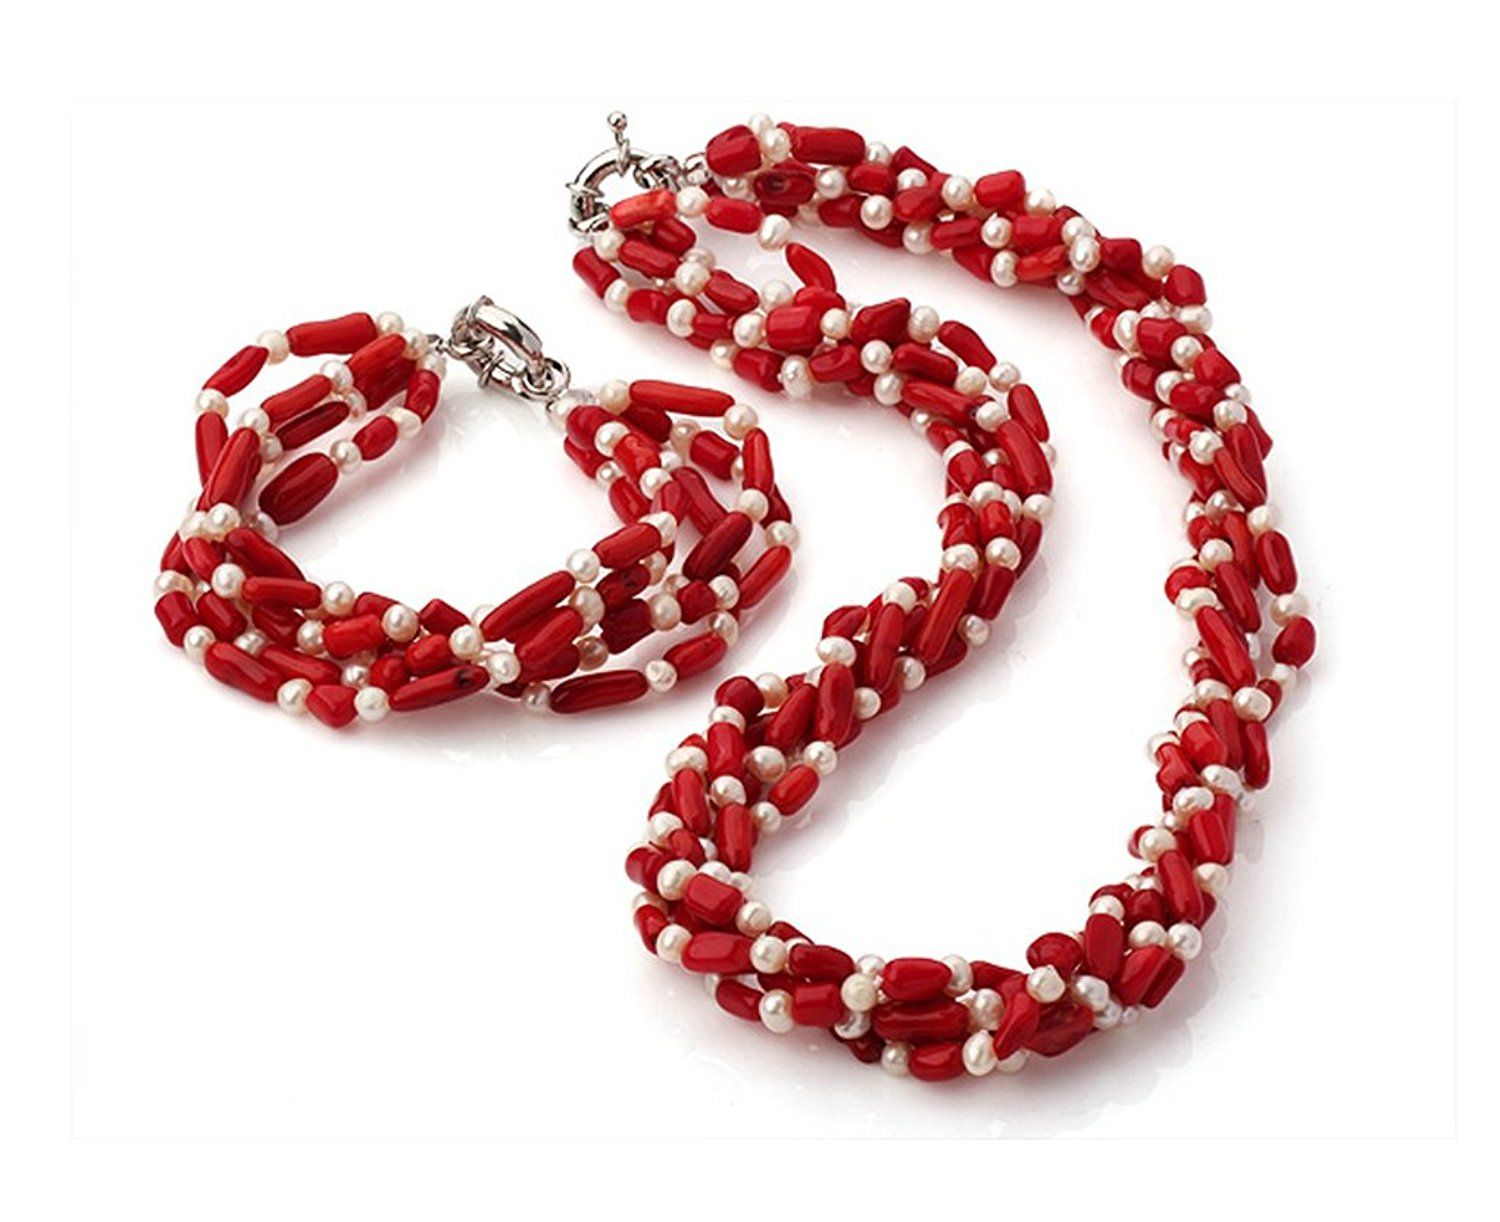 Charming Natural 7mm Pink Coral Necklace and Bracelet Jewellery Set - Presented in A Beautiful Jewellery Gift Box SfBMn3